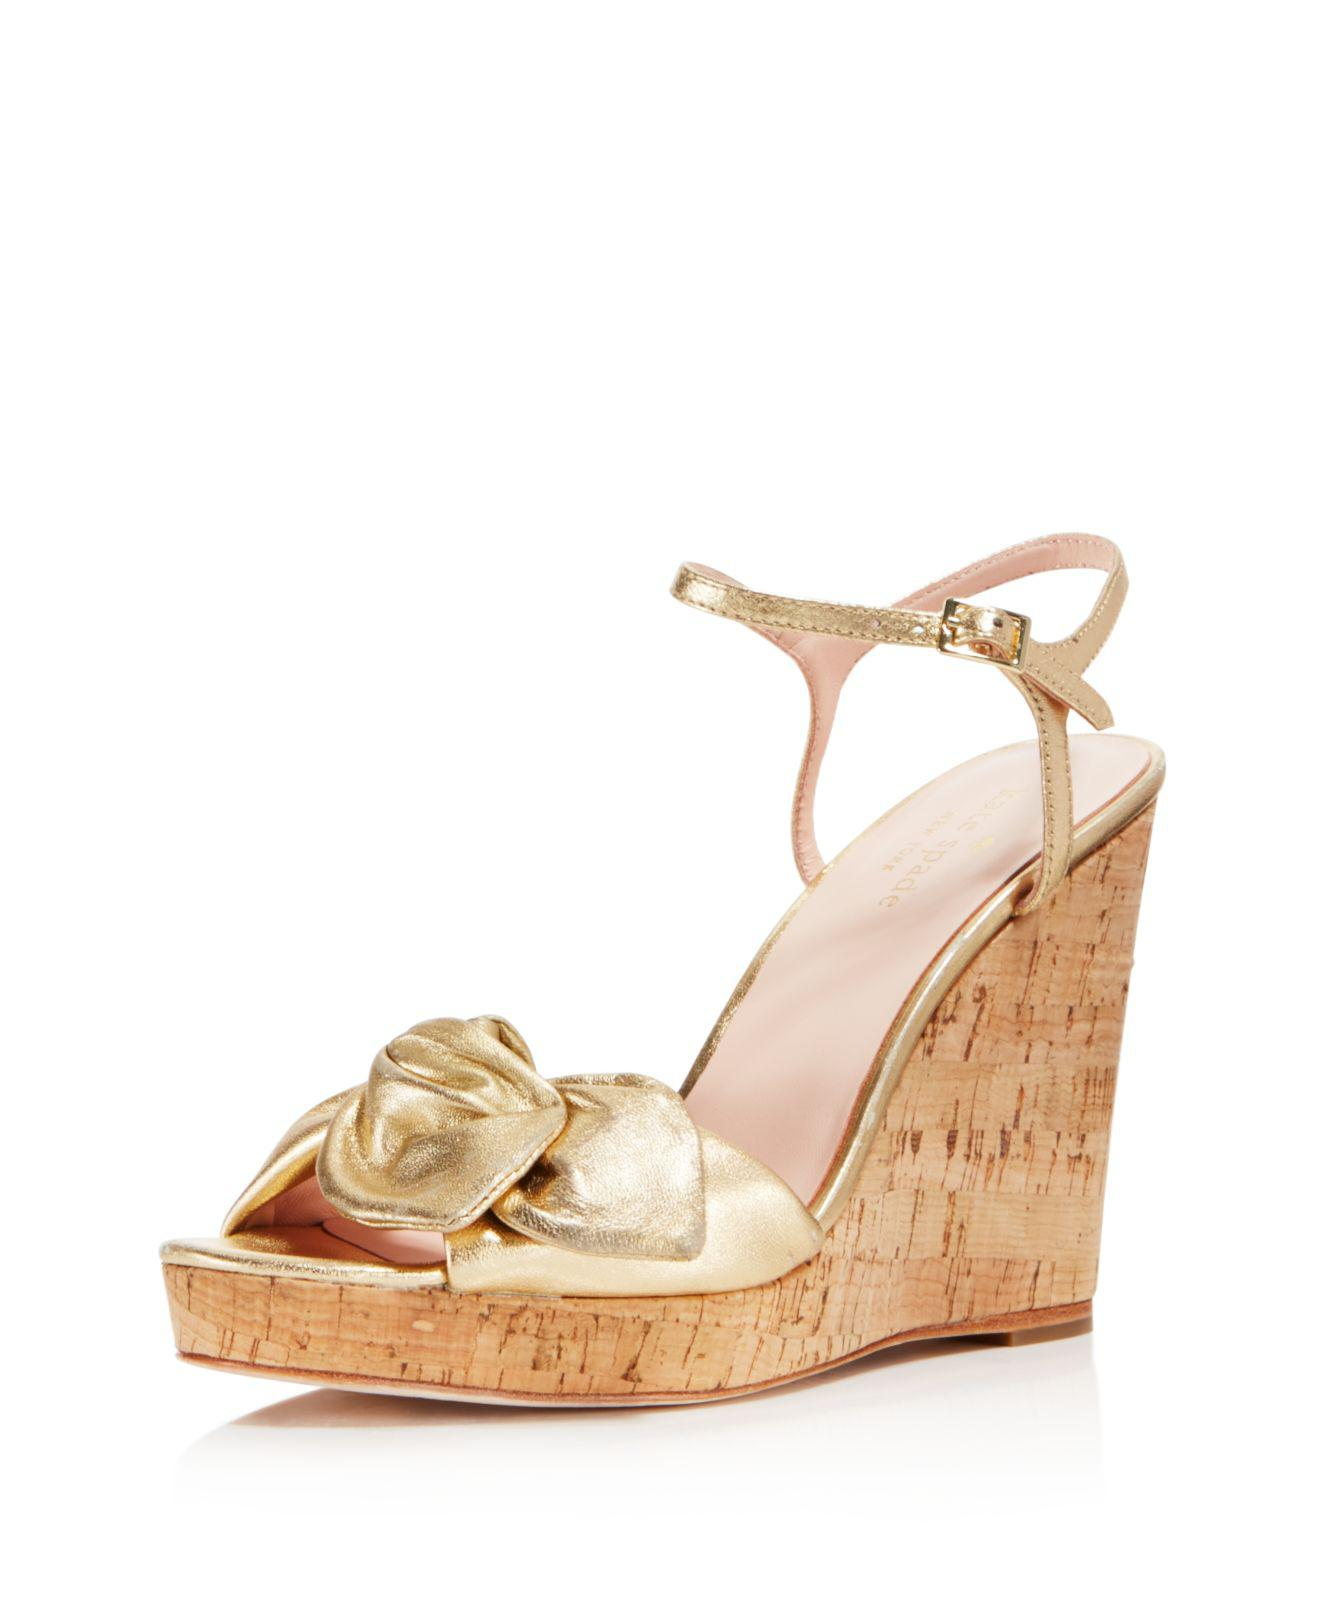 Kate Spade New York Women's Janae Chambray Platform Wedge Sandals